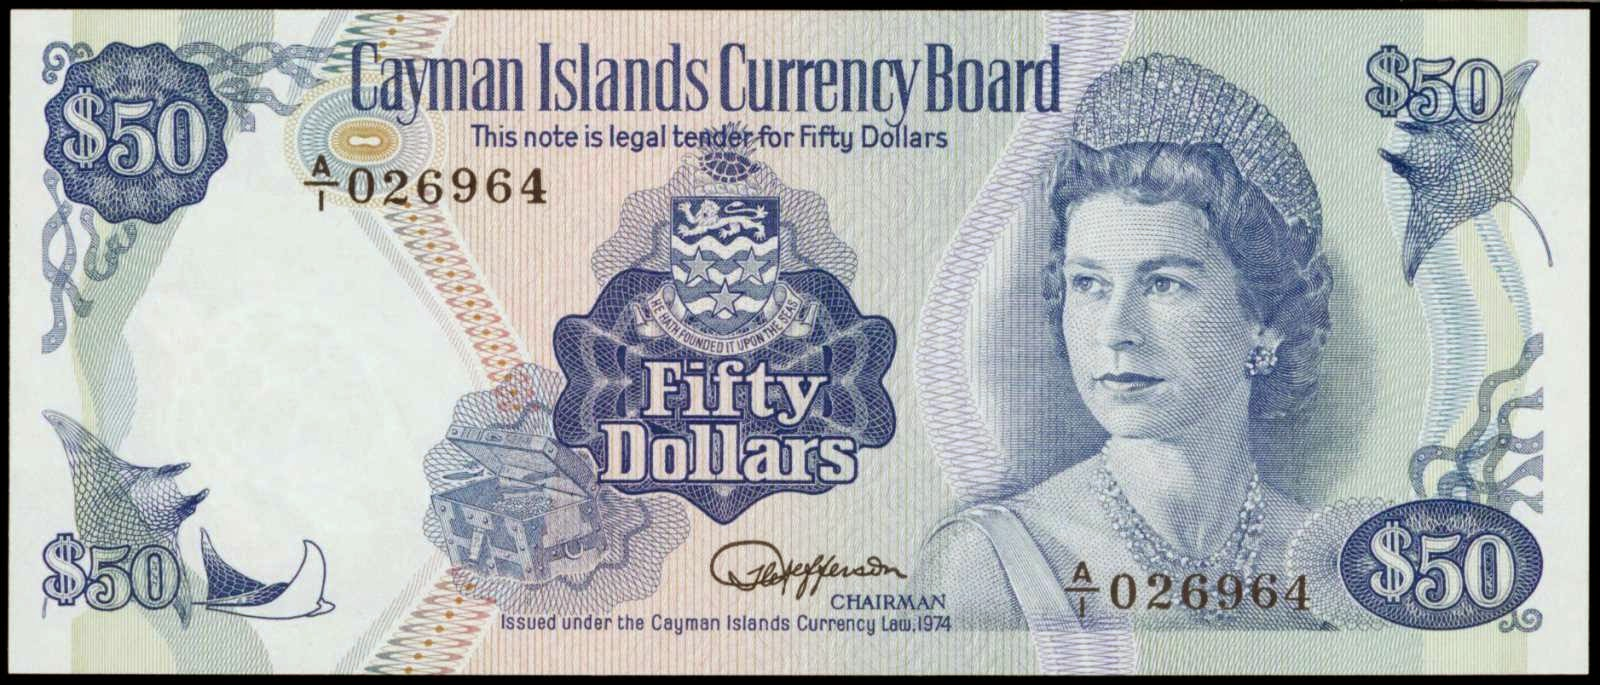 Worlds Strongest currency Rank 7 Cayman Islands